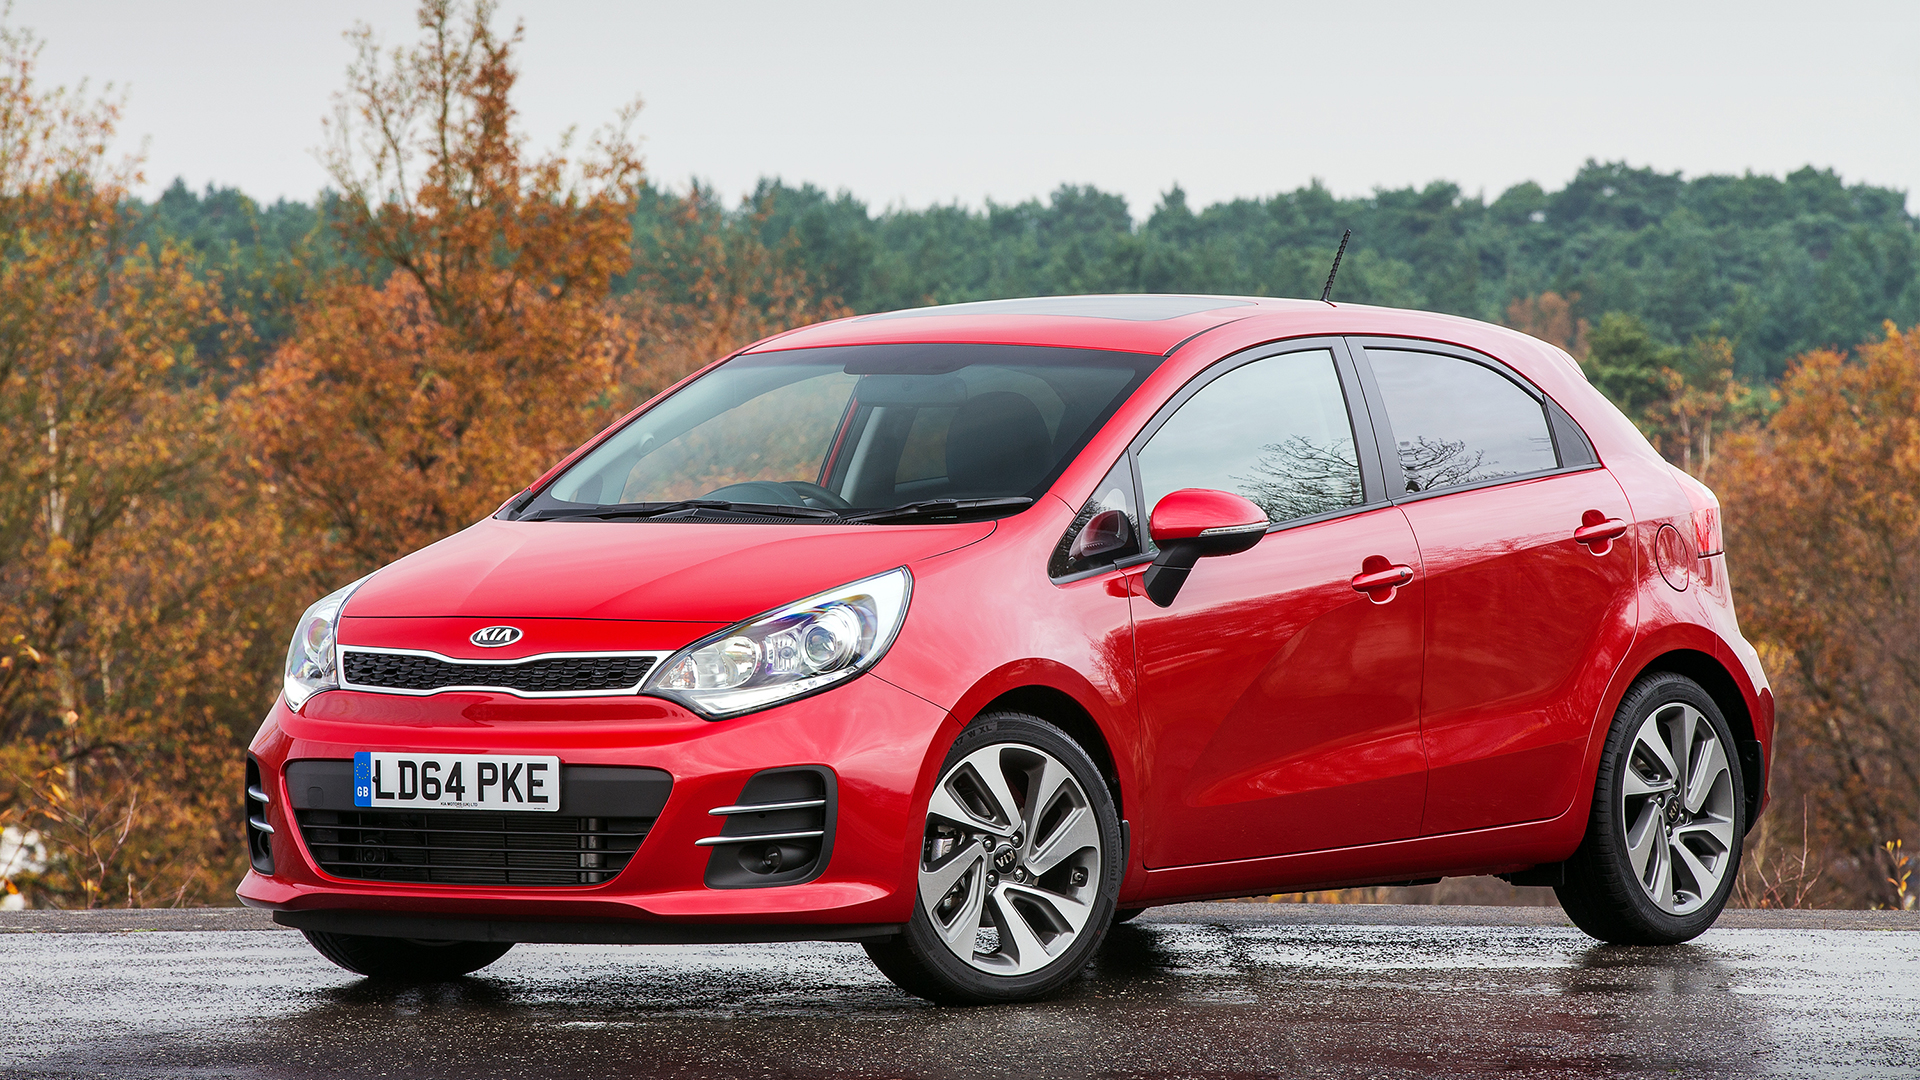 find used kia rio cars for sale on auto trader uk. Black Bedroom Furniture Sets. Home Design Ideas